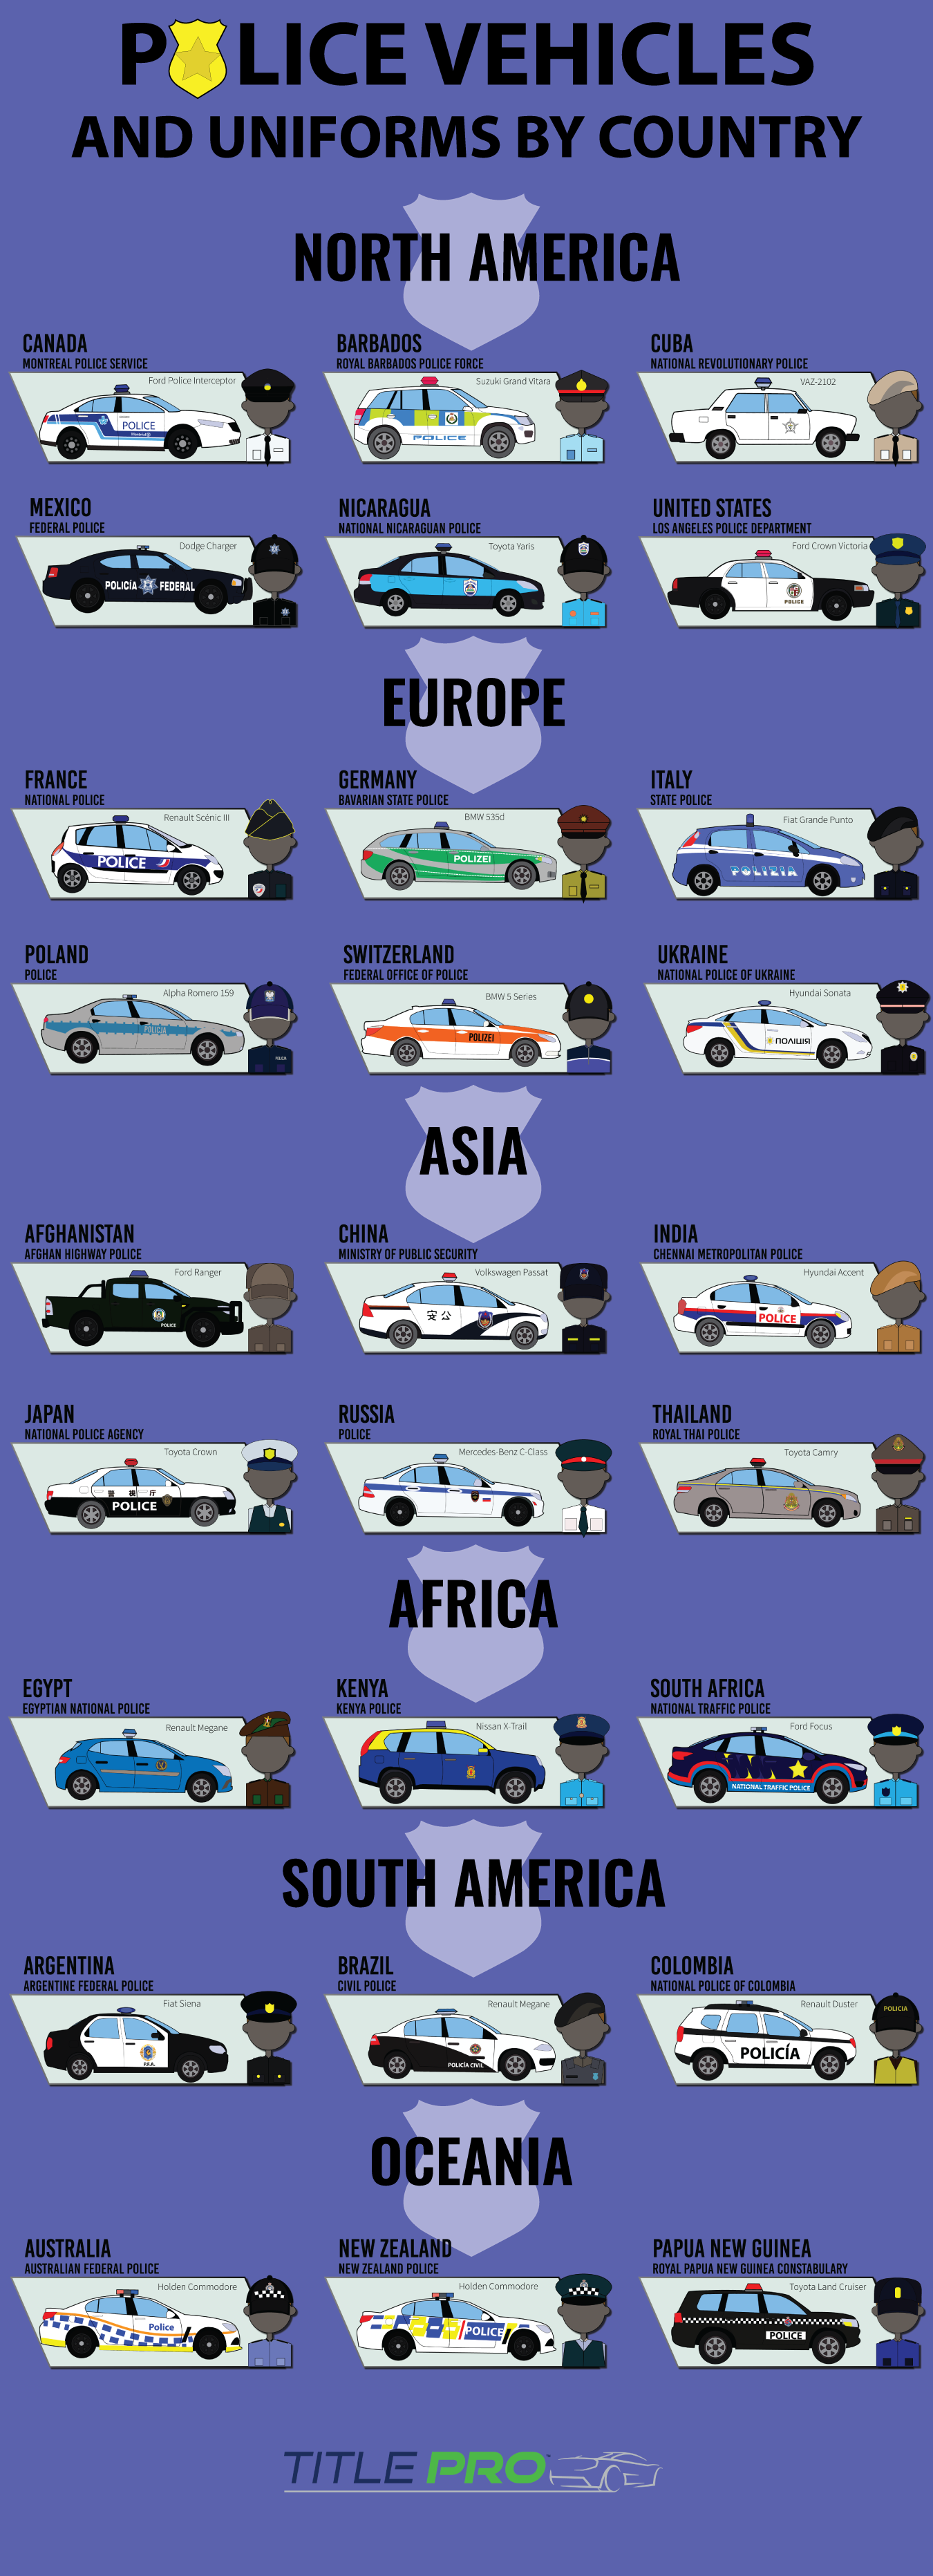 Police Vehicles And Uniforms By Country